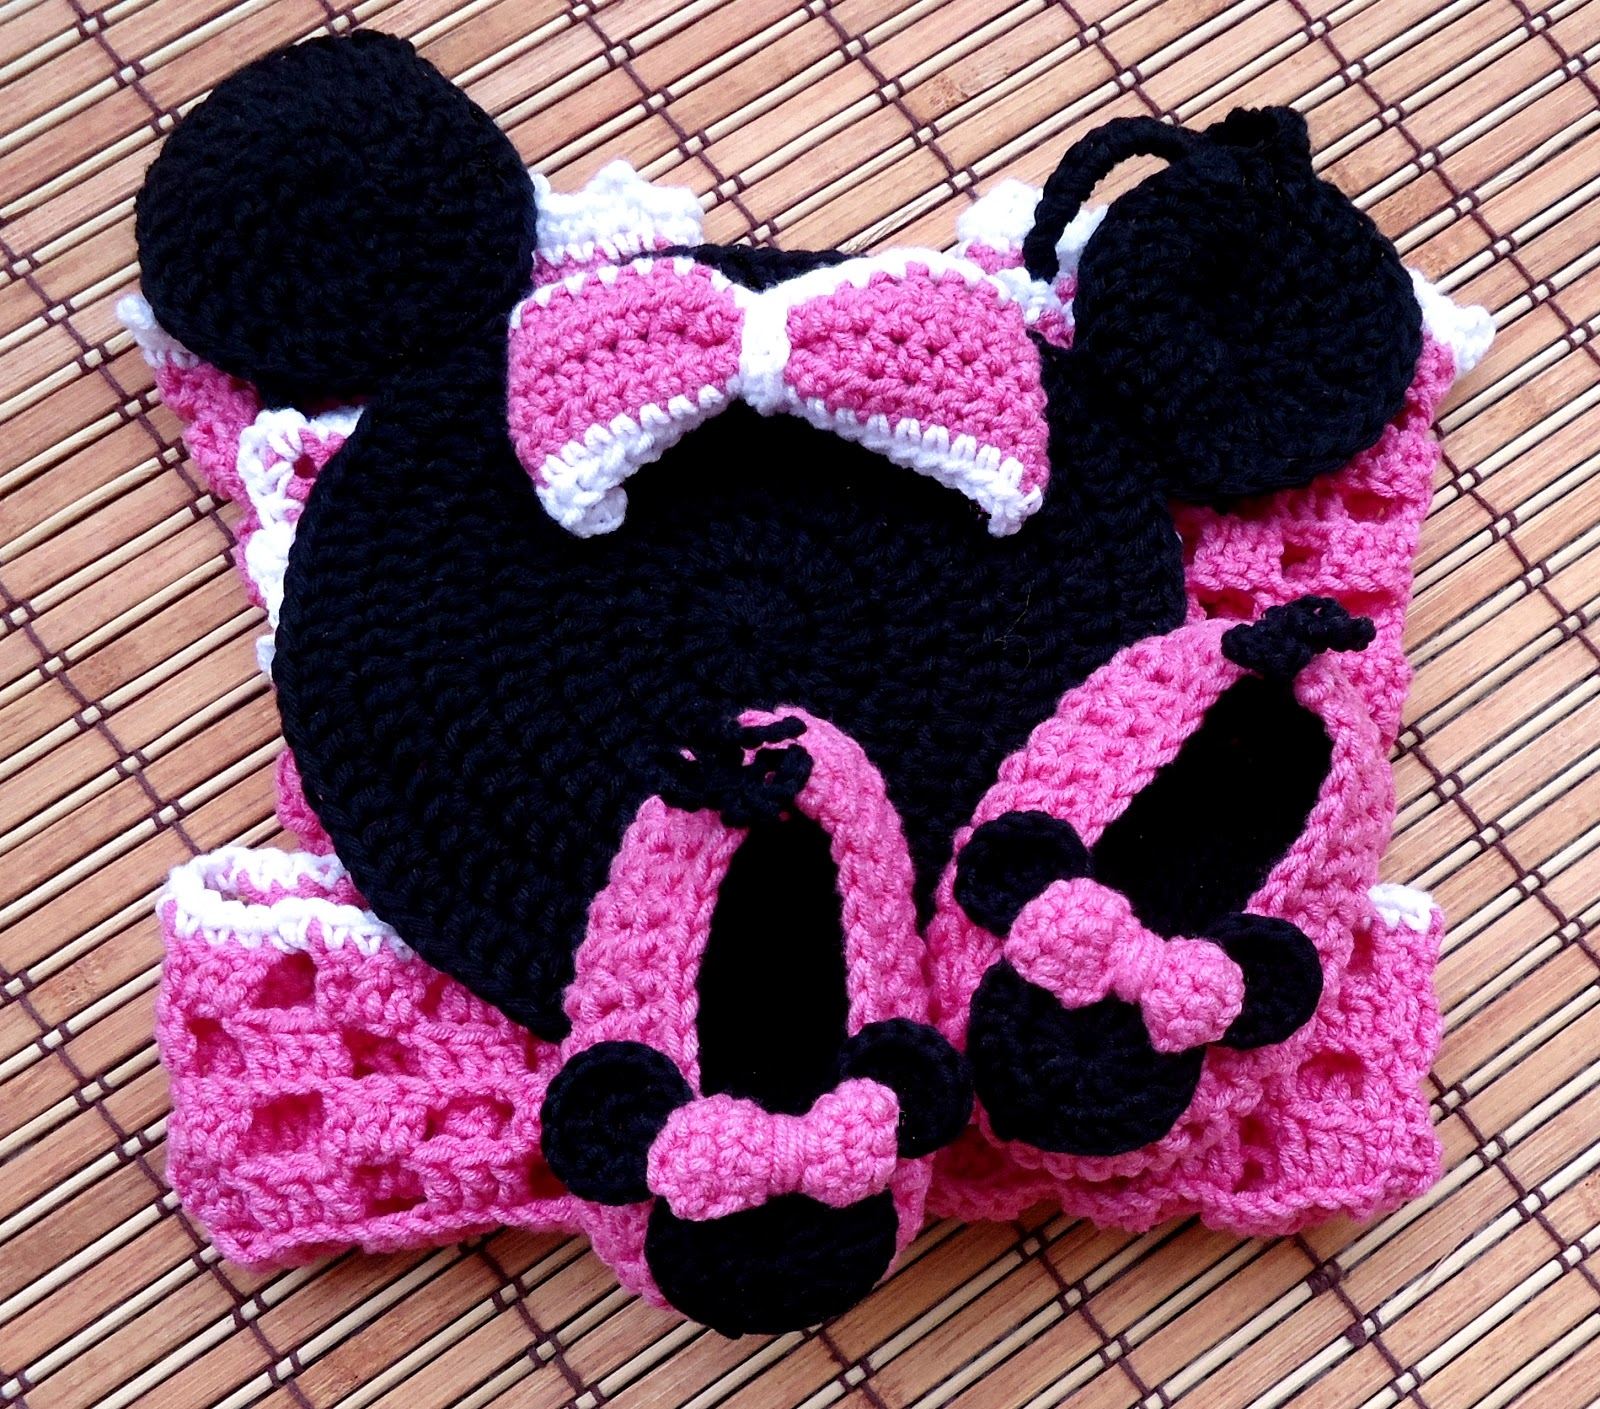 Crochet Patterns For Minnie Mouse : Beauty Crochet Pattern: Miss Bow Mouse Romper and Shoes ...